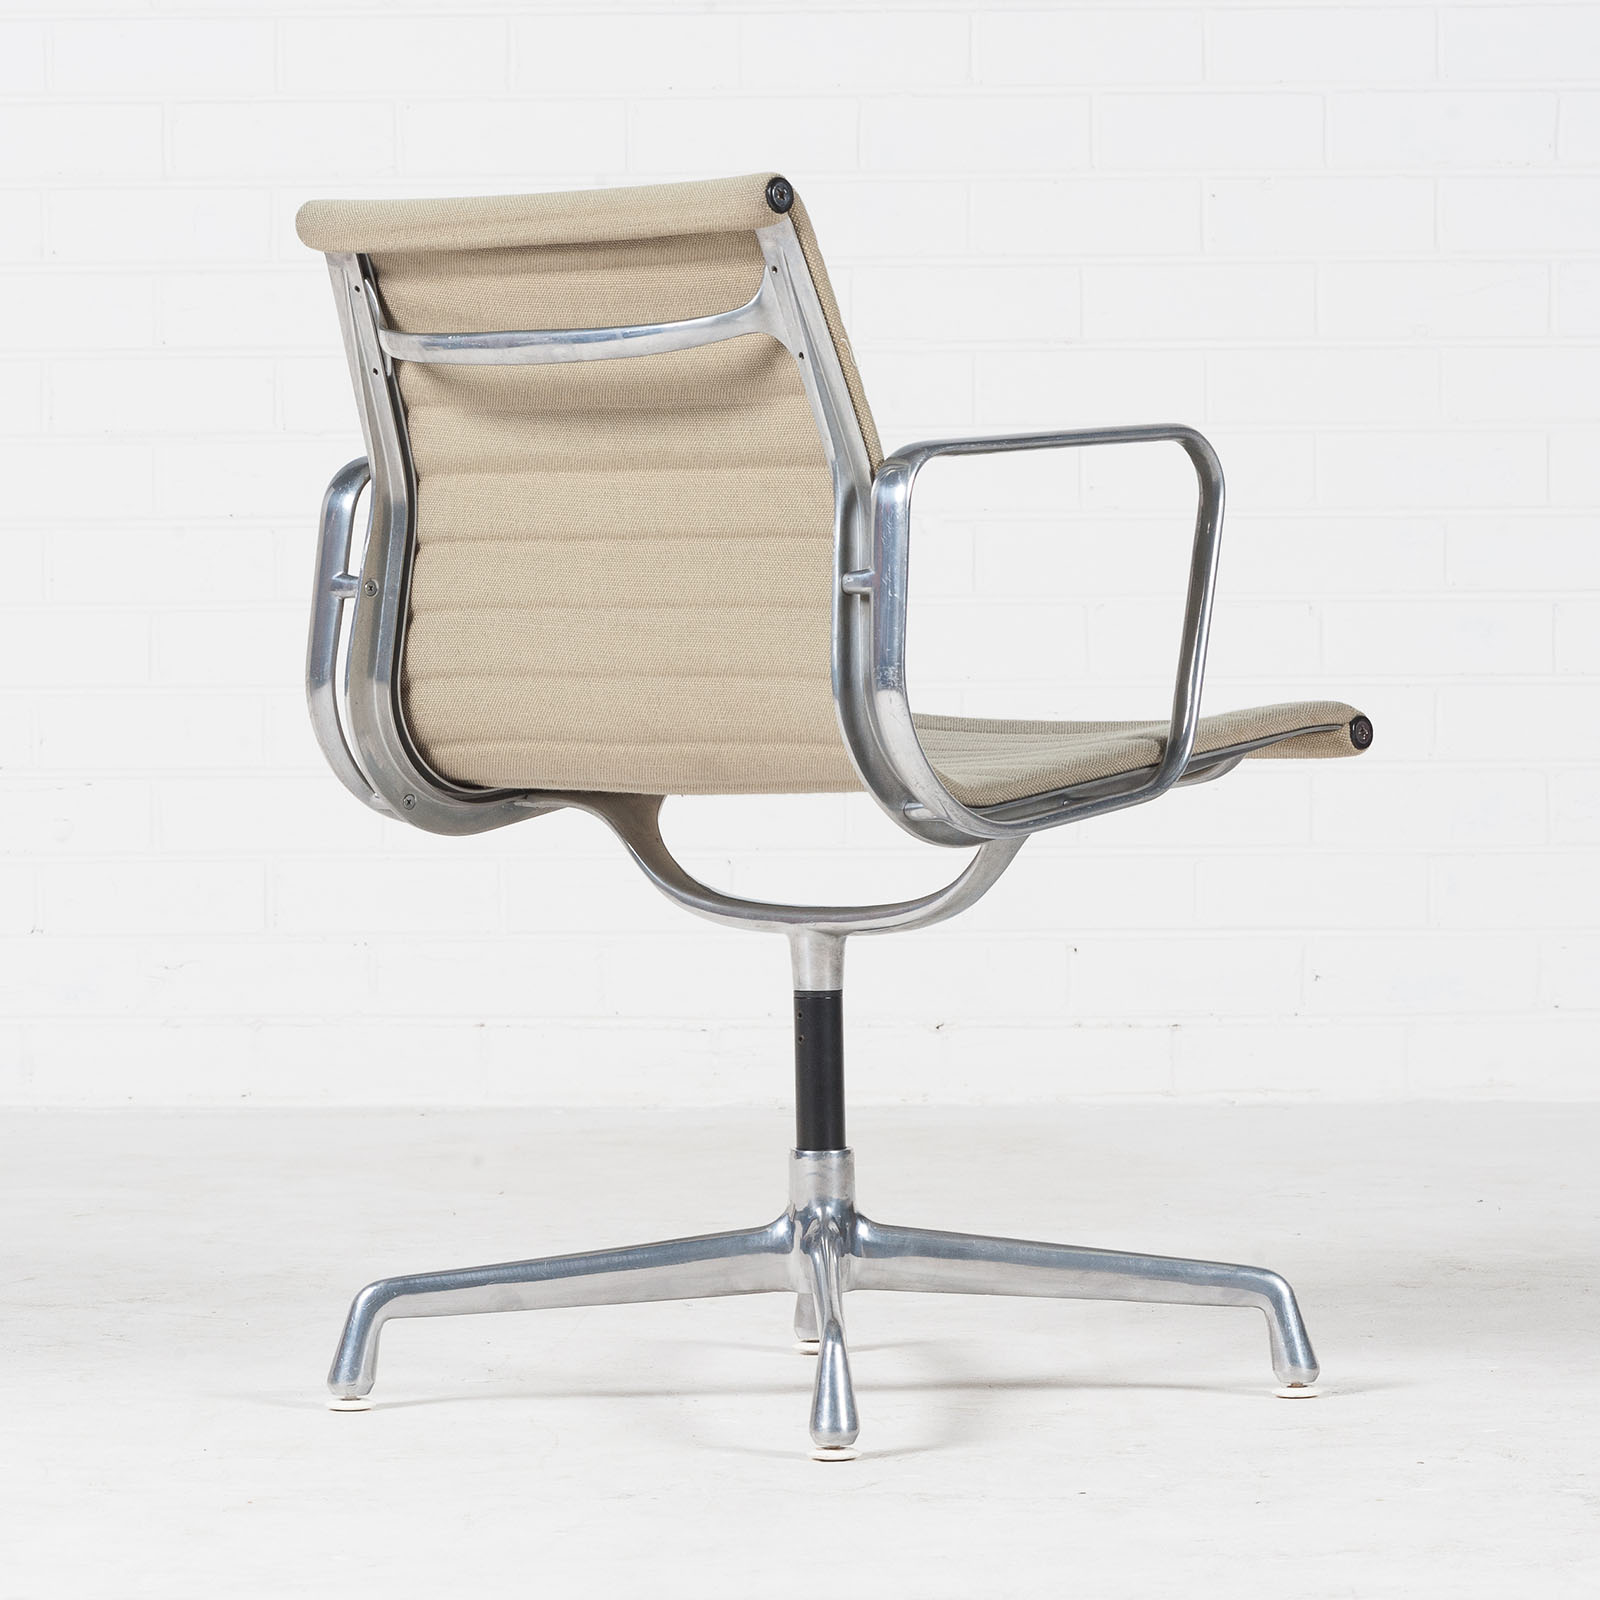 Eames Ea 108 Chair By Charles & Ray Eames For Vitra 1950s America 05